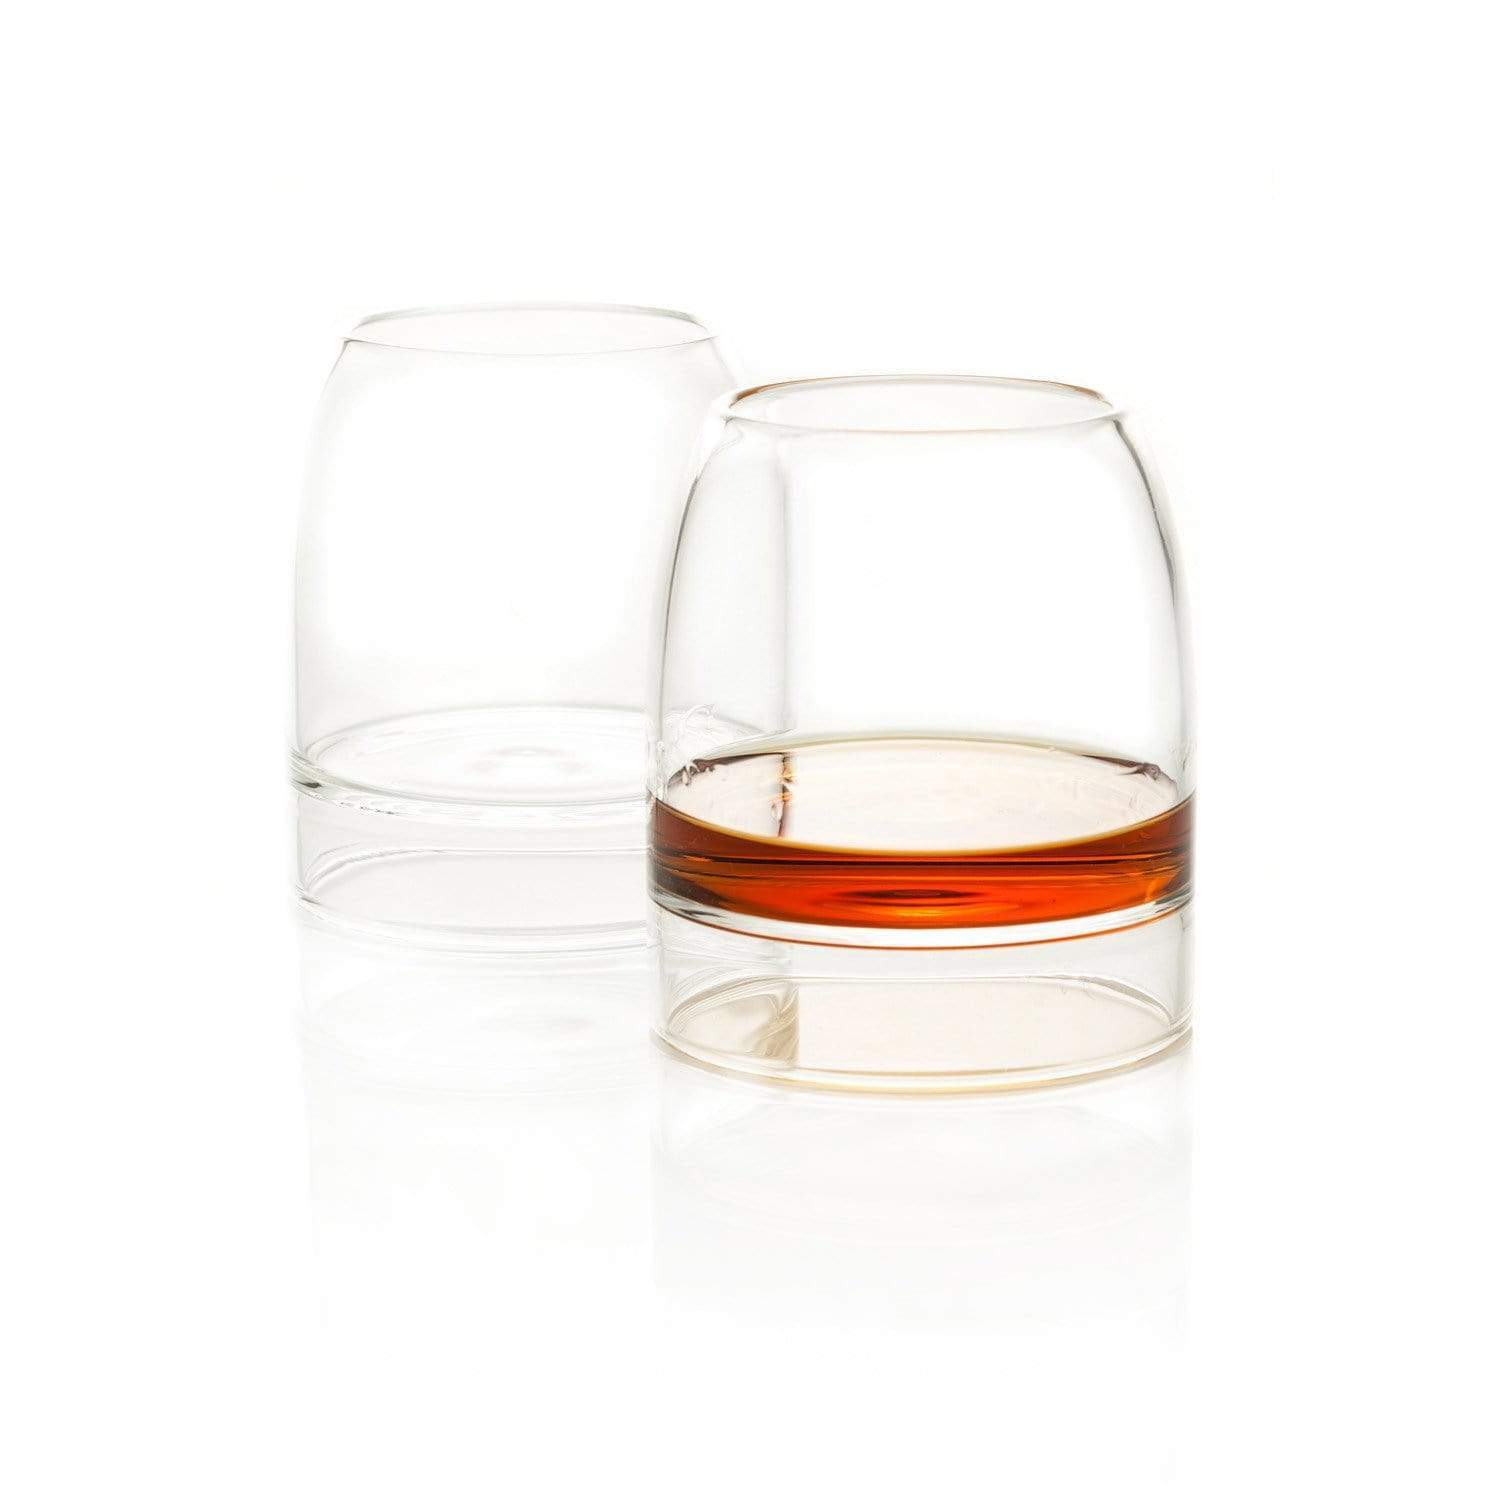 Fferrone Fferrone Rare Whiskey Glasses - Set Of 2 RA02